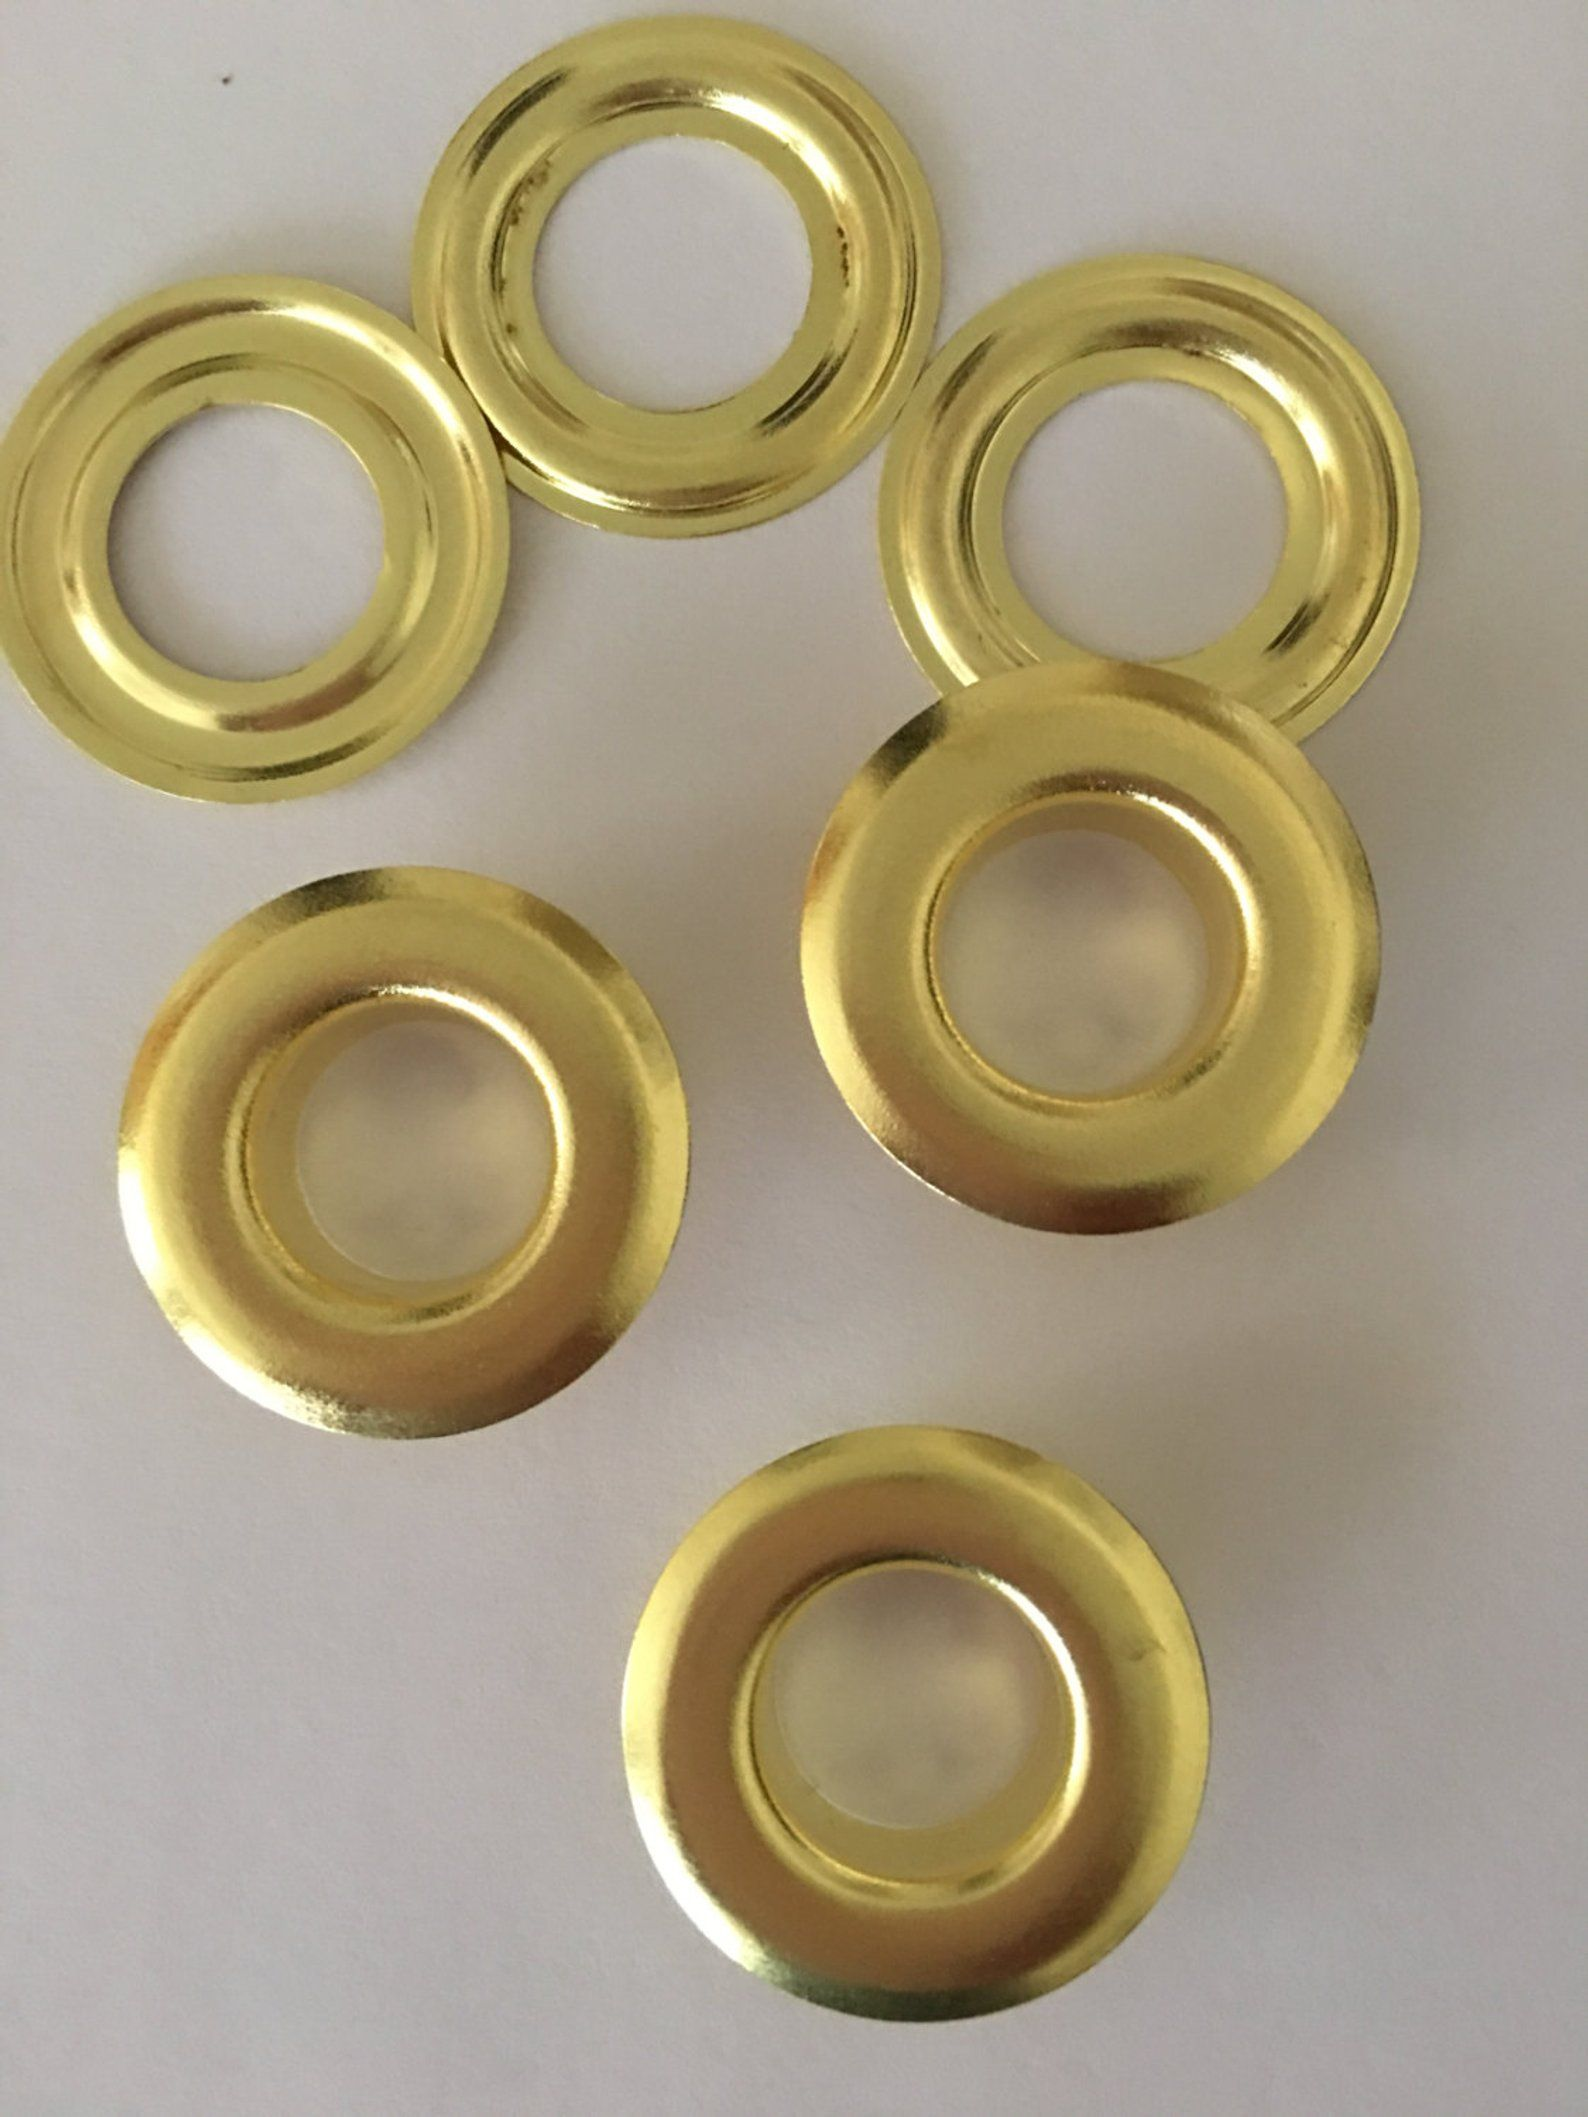 100 4 1 2 Solid Brass Self Piercing Grommets Etsy Solid Brass Grommets Etsy